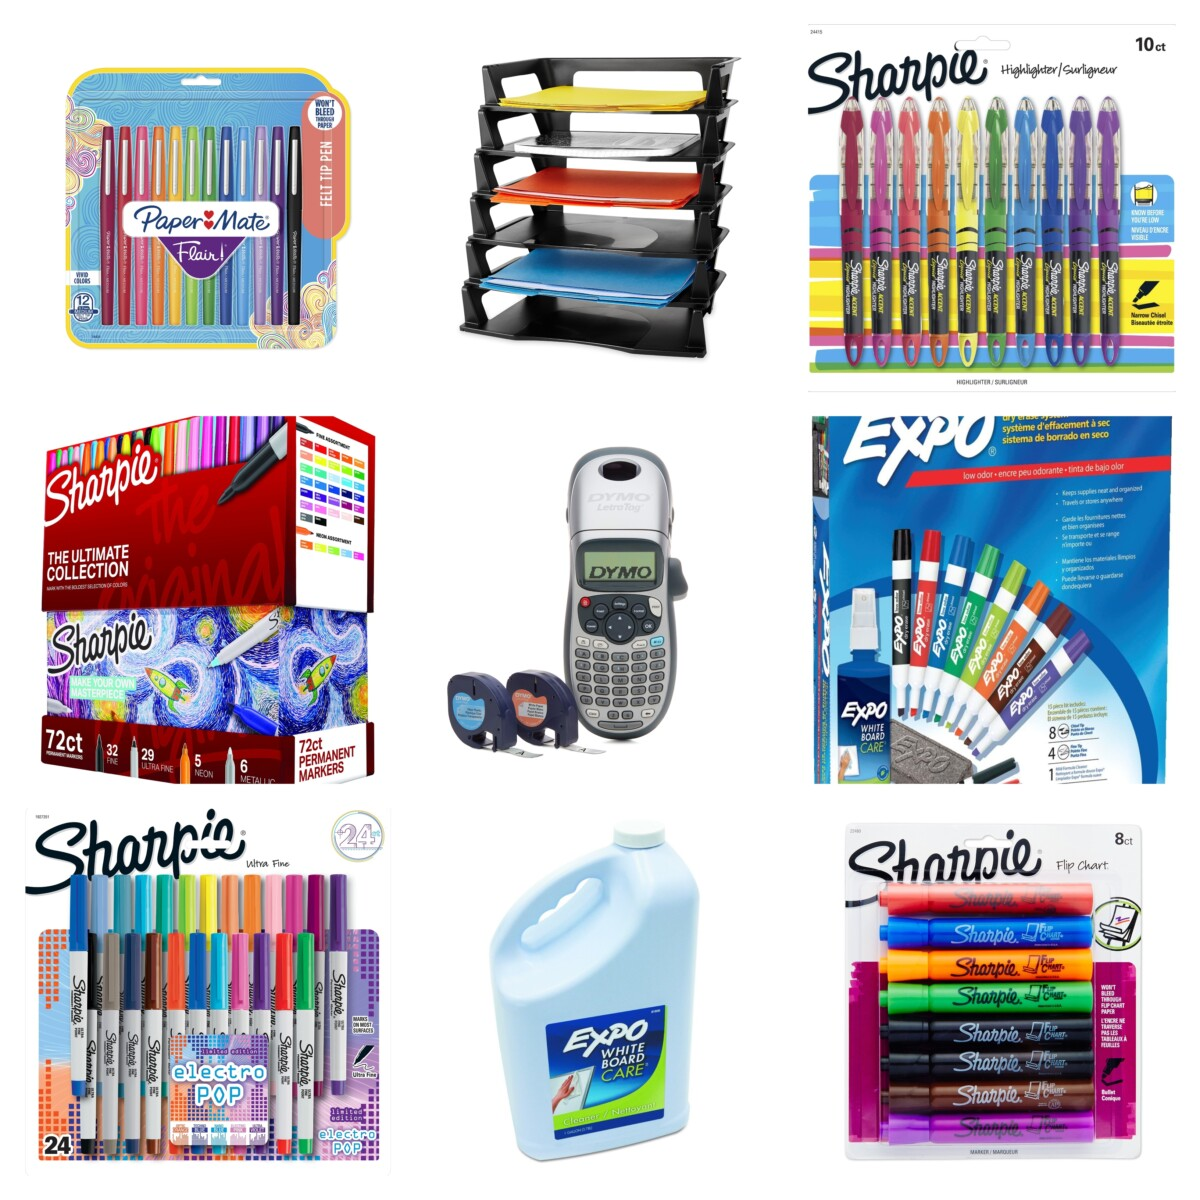 Amazon: Save $10 when you spend $25 or more on Sharpie, Expo, and more! TONS of Deals!